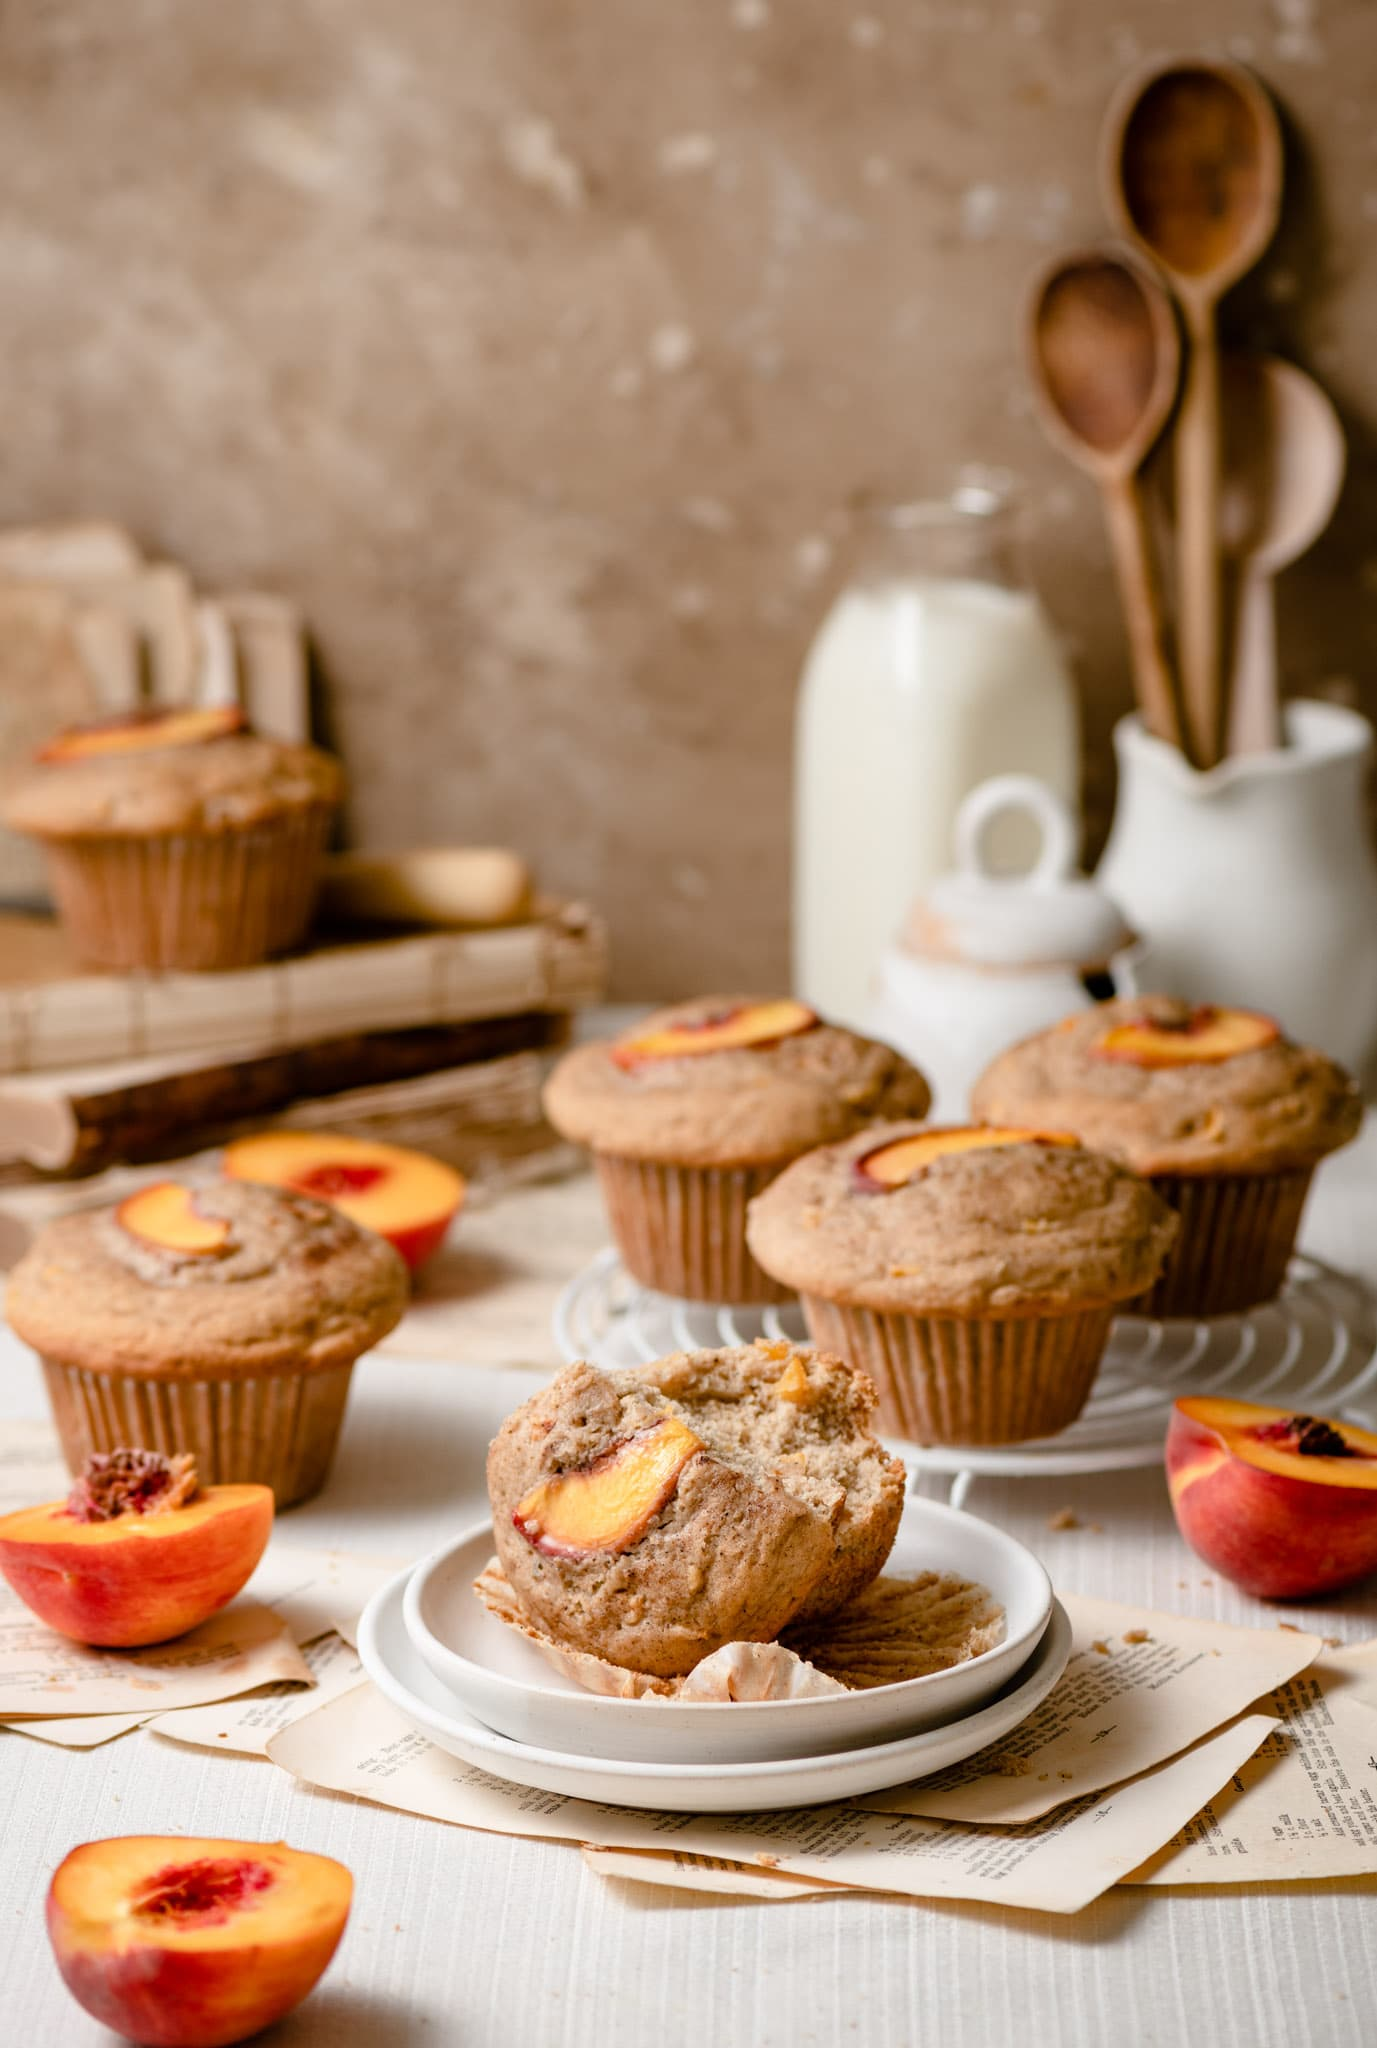 Breakfast muffins topped with peach slices.